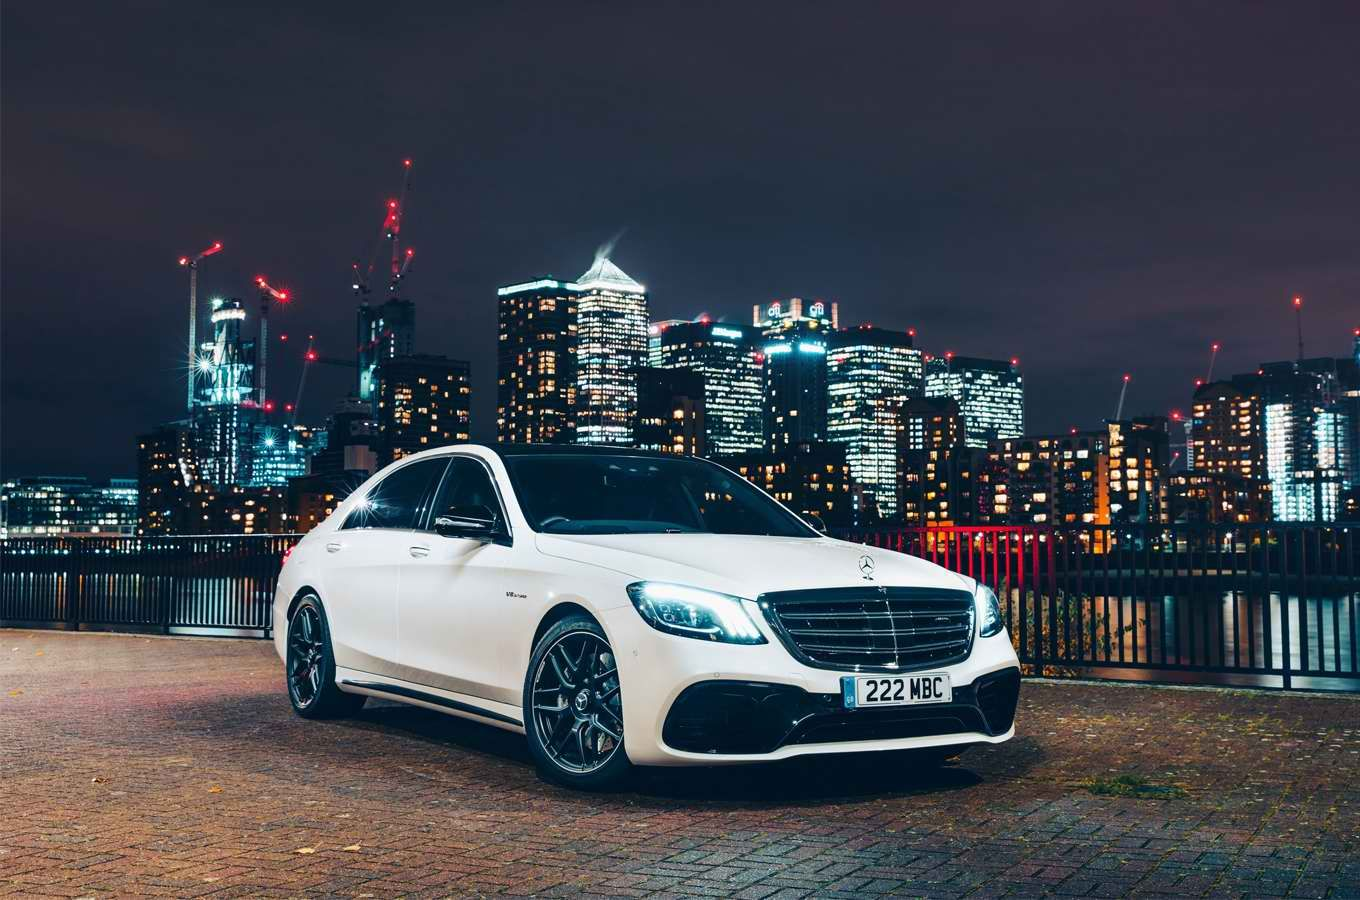 List Of Top 20 Most Luxurious Cars Board Our Online Magazine Especially For Lovers Of Luxury Selects More High Mercedes Wallpaper Best Luxury Cars Mercedes